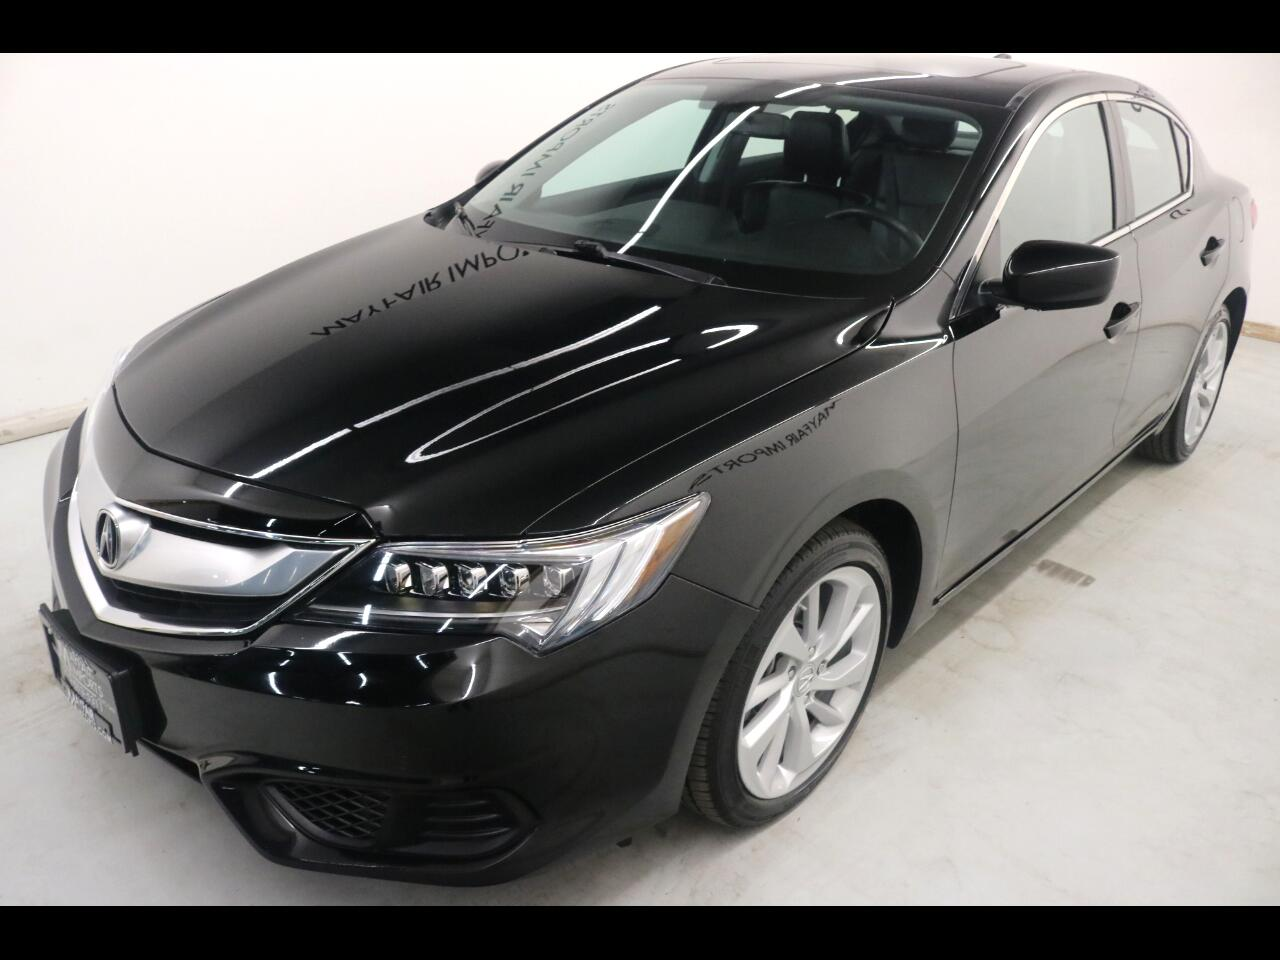 Acura ILX 8-Spd AT w/ AcuraWatch Plus Package 2018